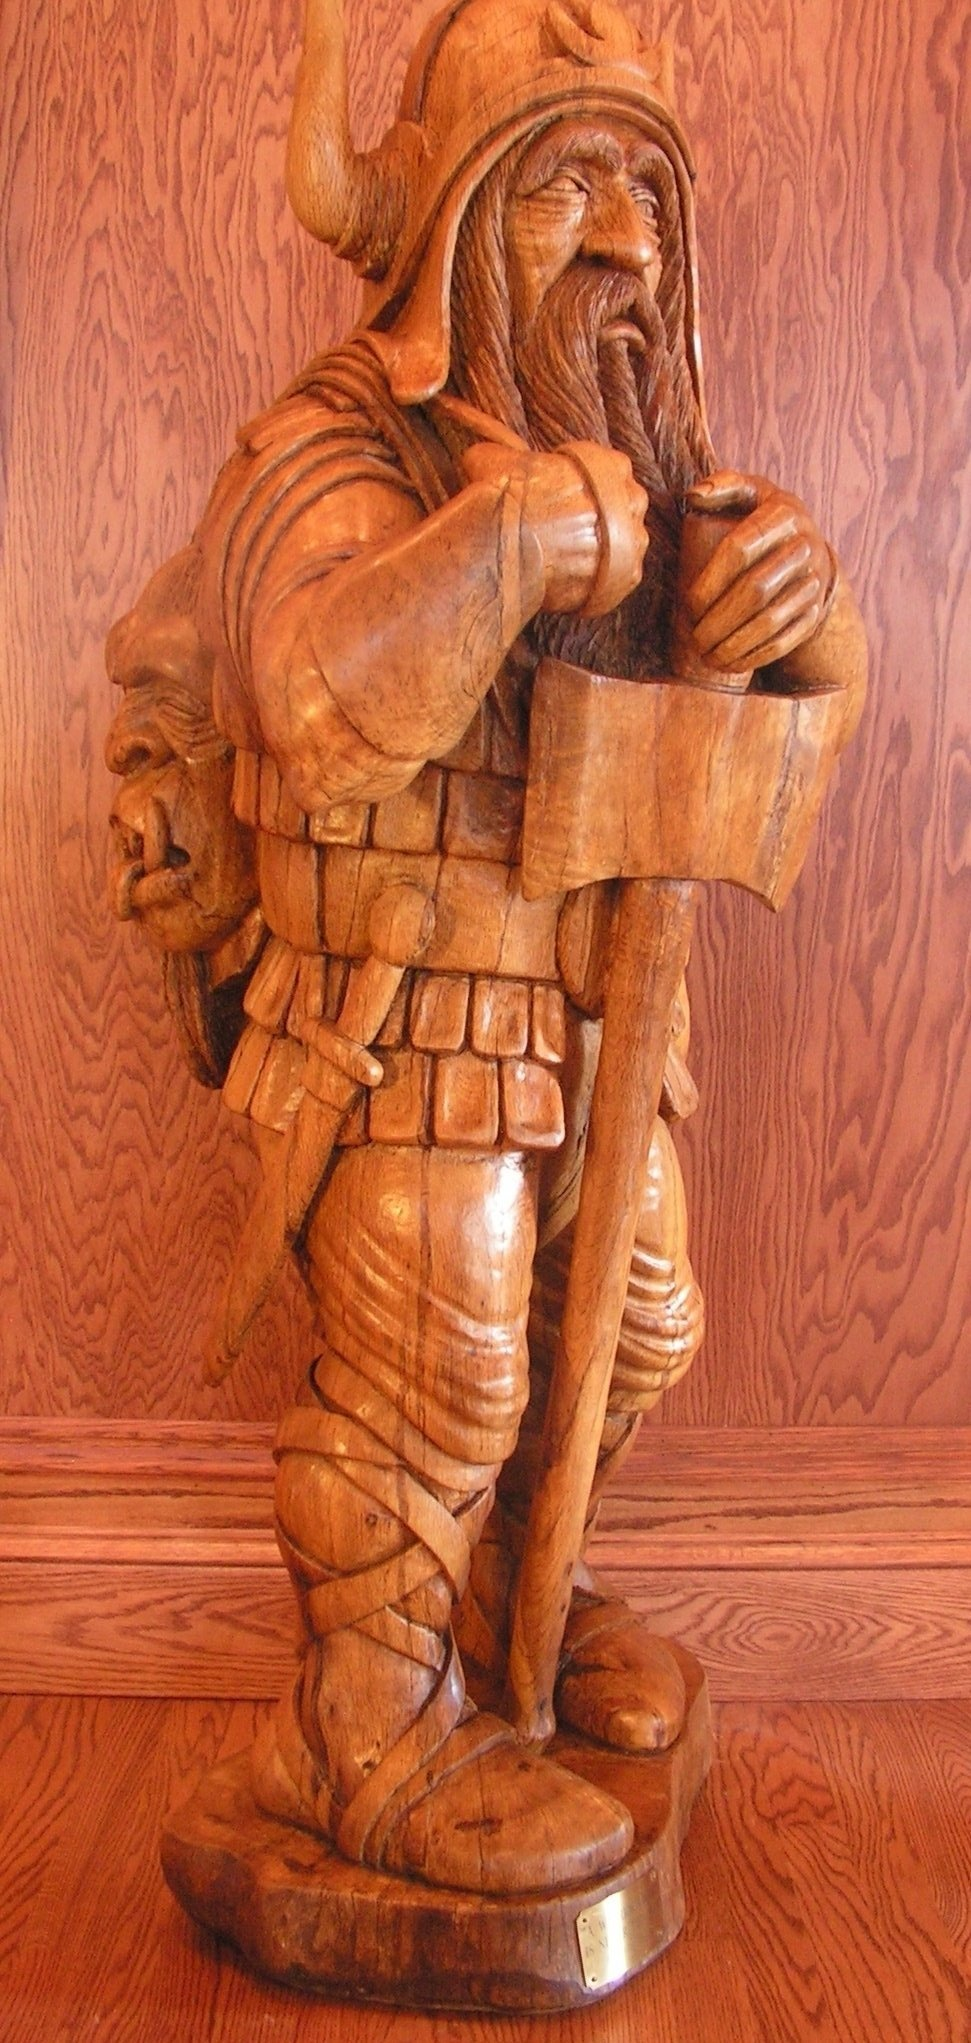 Ronald Smith; A Warrior Dwarf Is Never ..., 1997, Original sculpture wood, 24 x 60 inches. Artwork description: 241  A Warrior Dwarf is Never Too Old , Sculpture, wood, fantasy, Tolkien, mythology, figurative, representational...